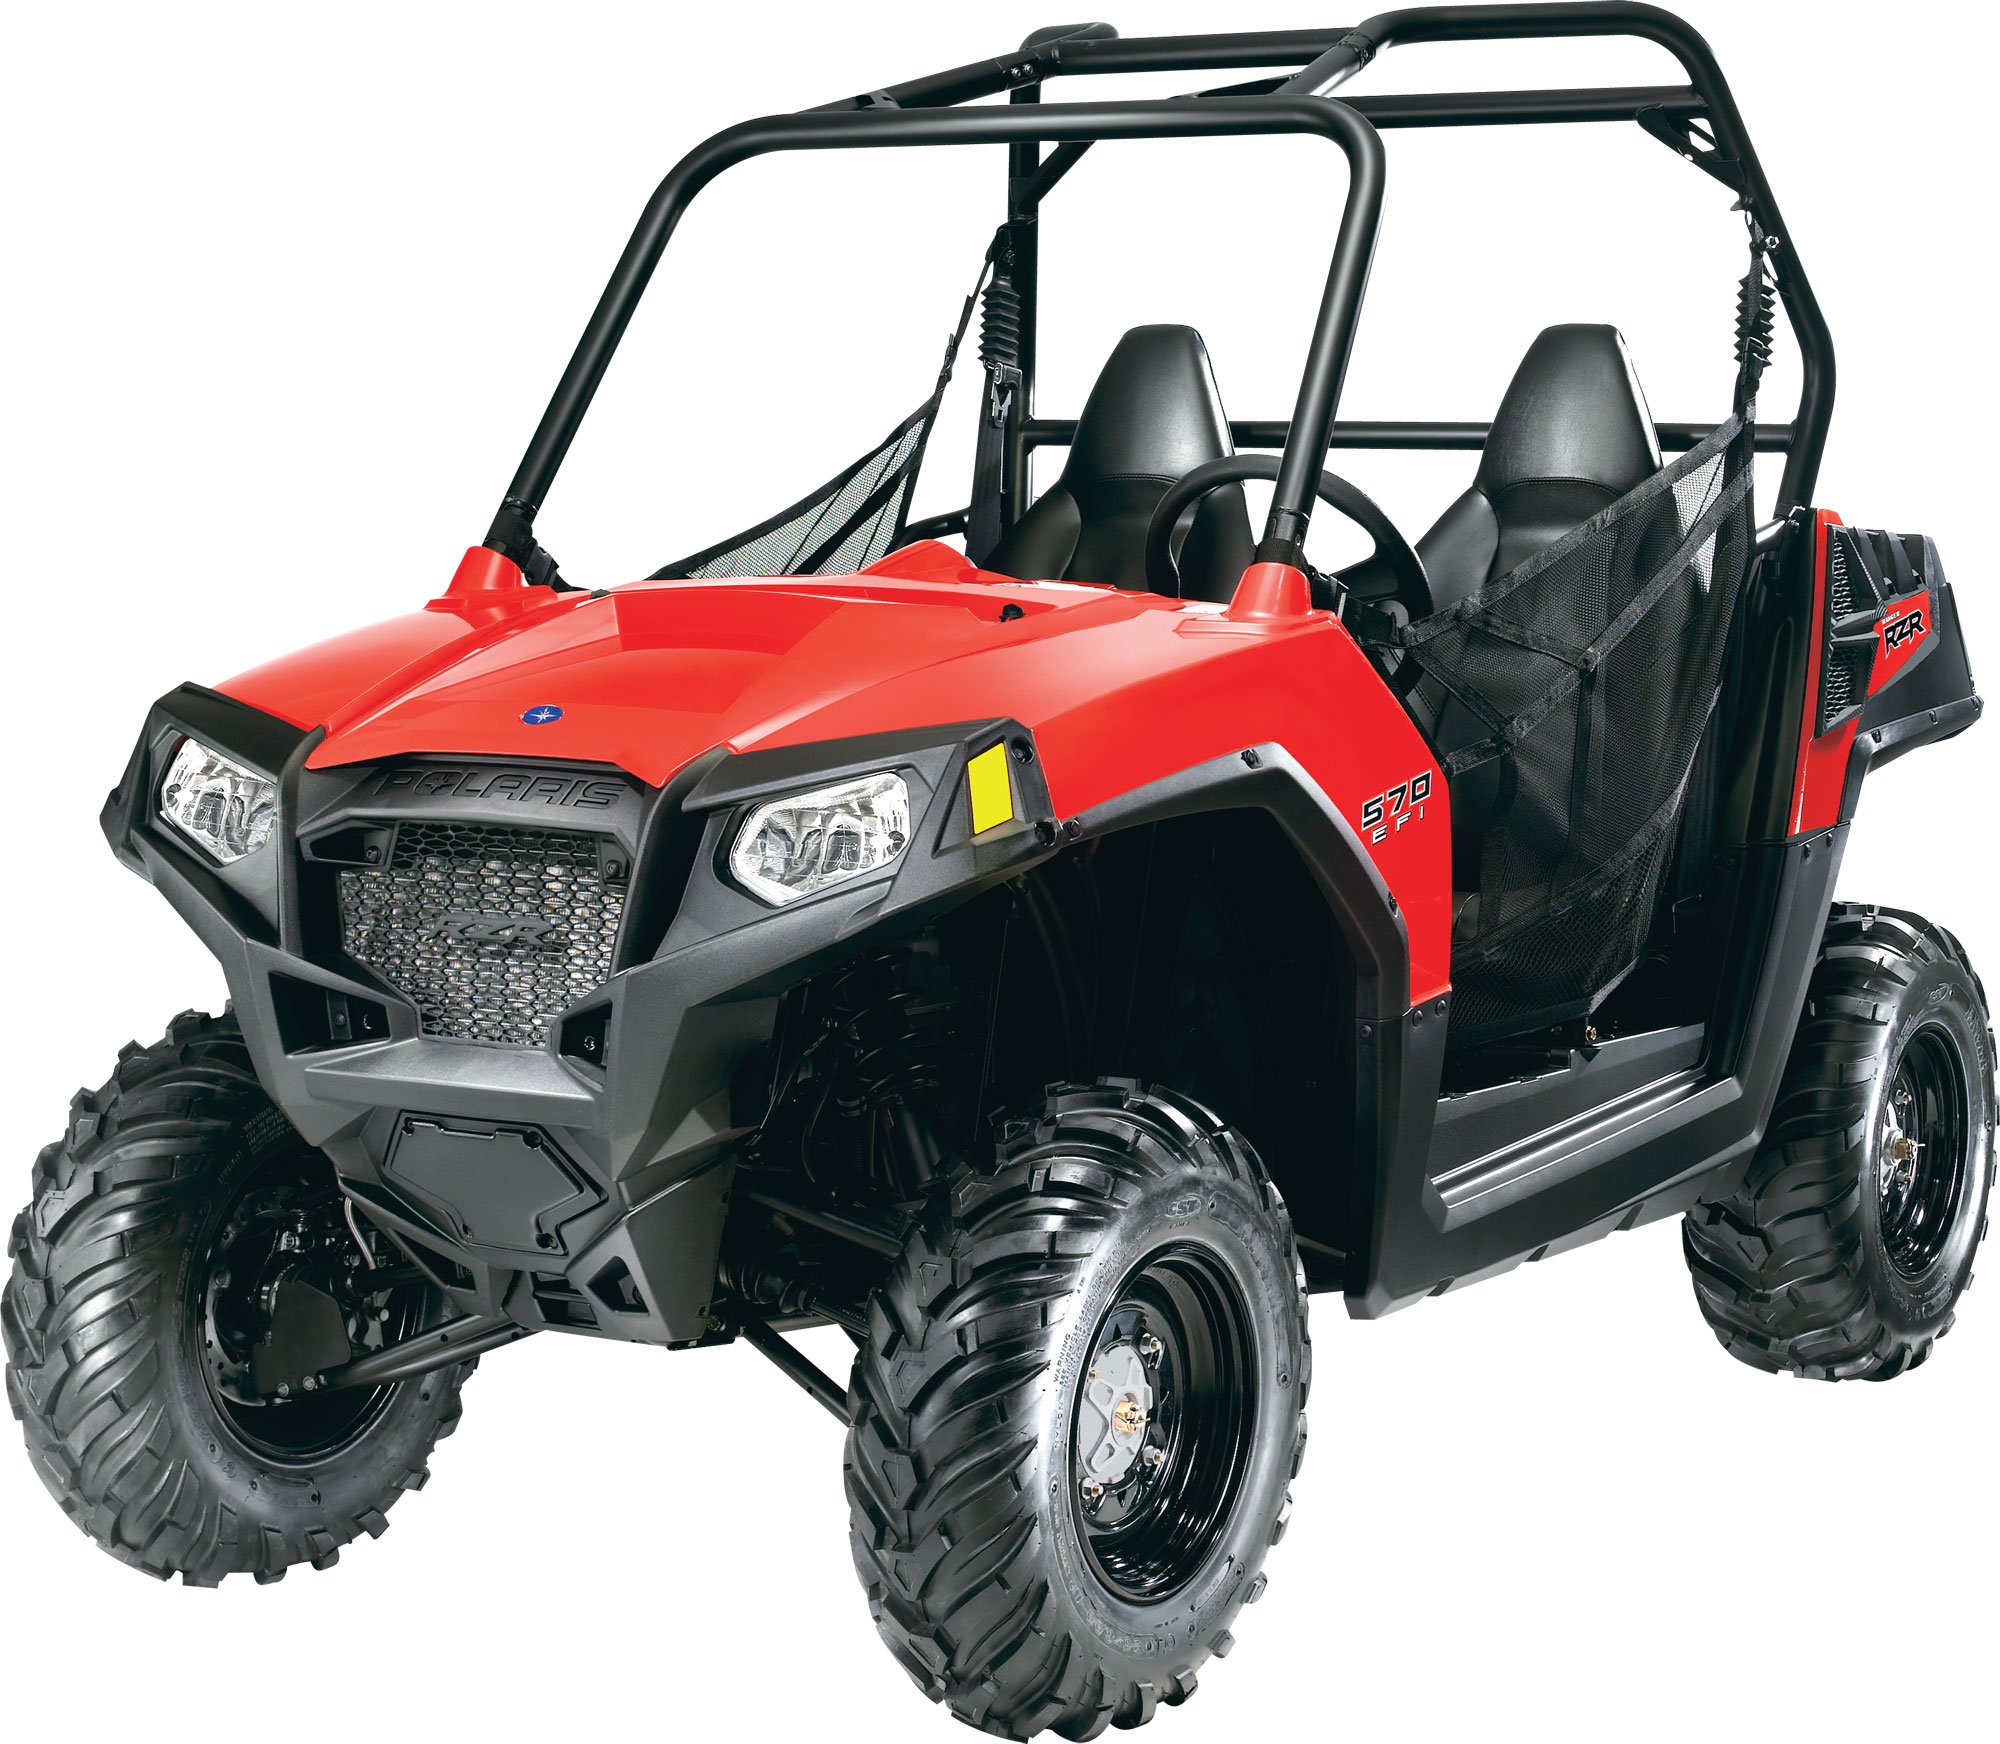 2012 polaris ranger rzr 570 review. Black Bedroom Furniture Sets. Home Design Ideas